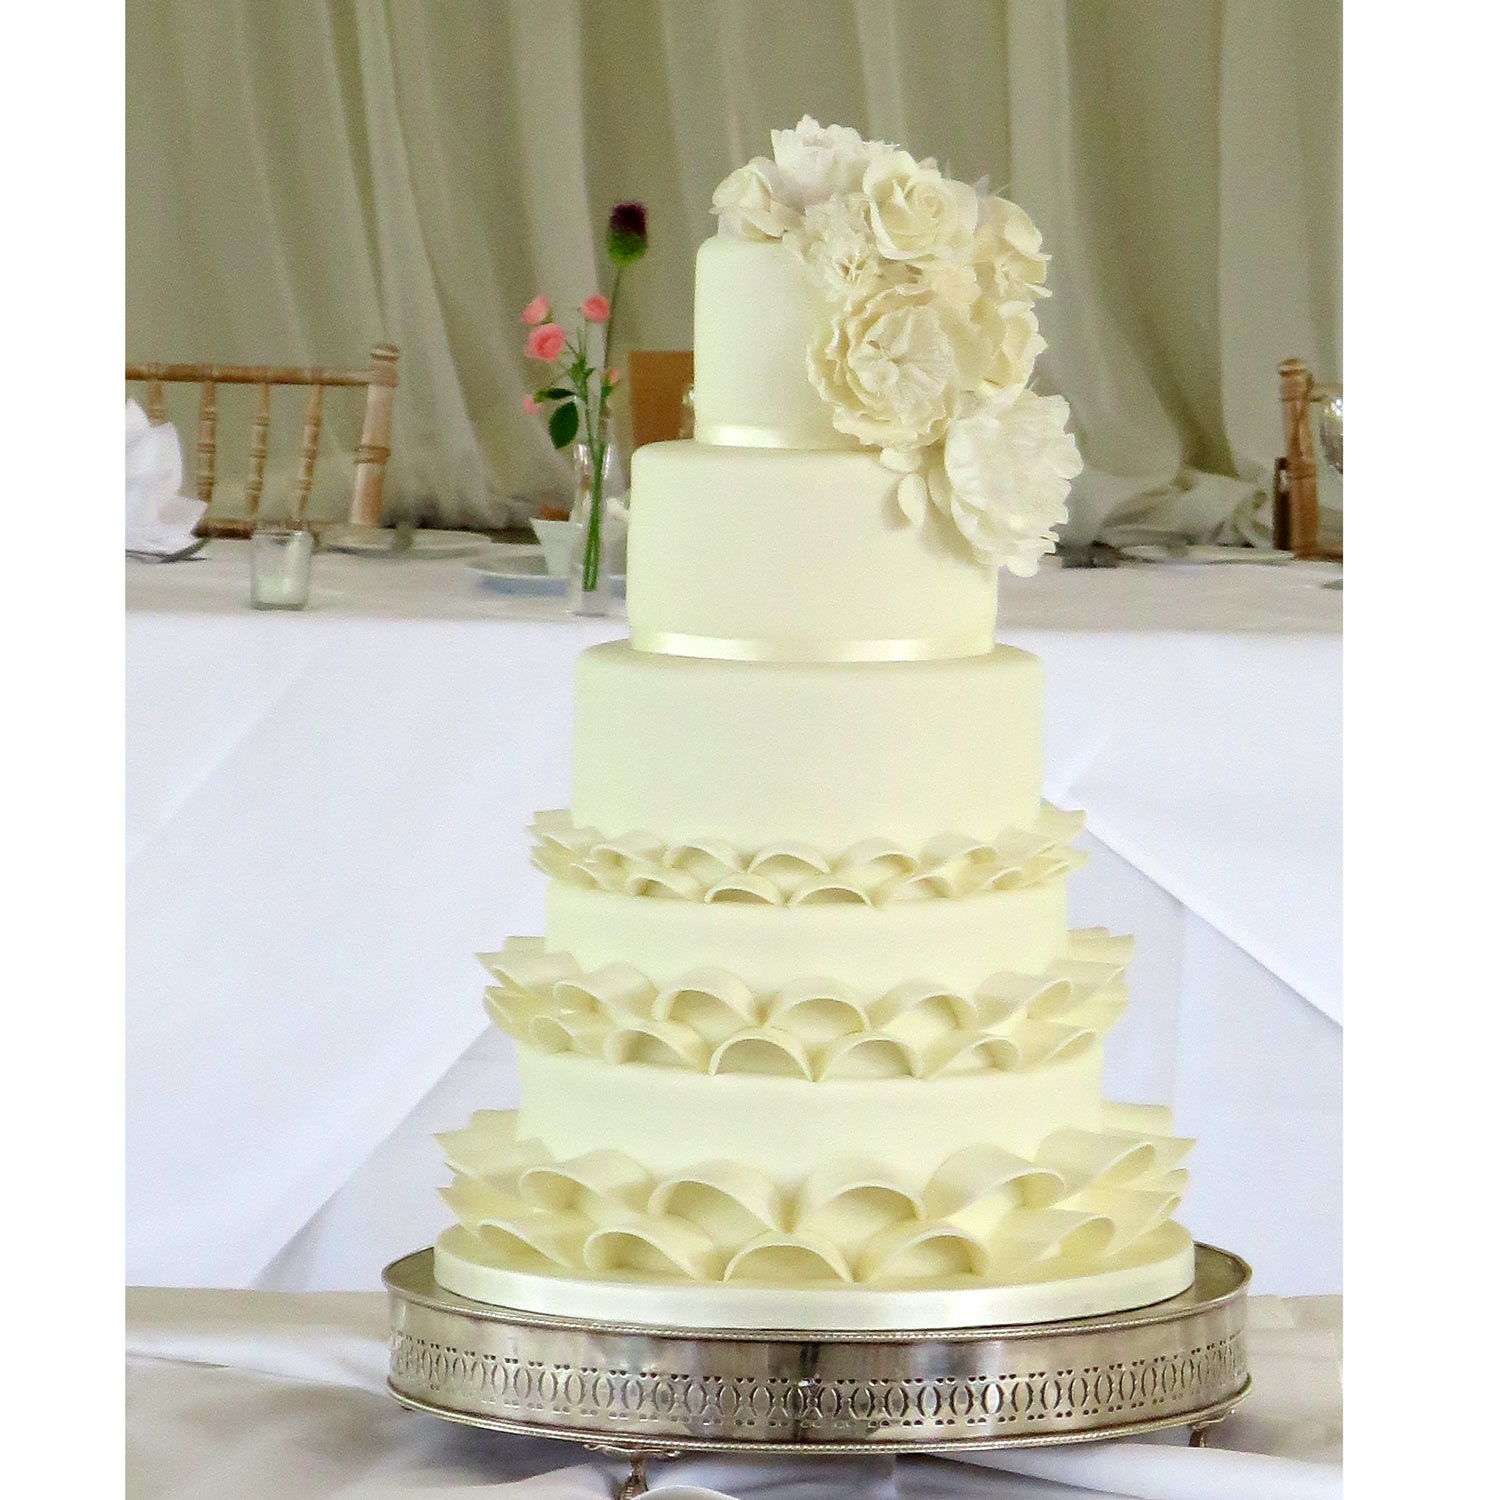 Millie Tall Wedding Cakes Decorated With Sugar Roses And